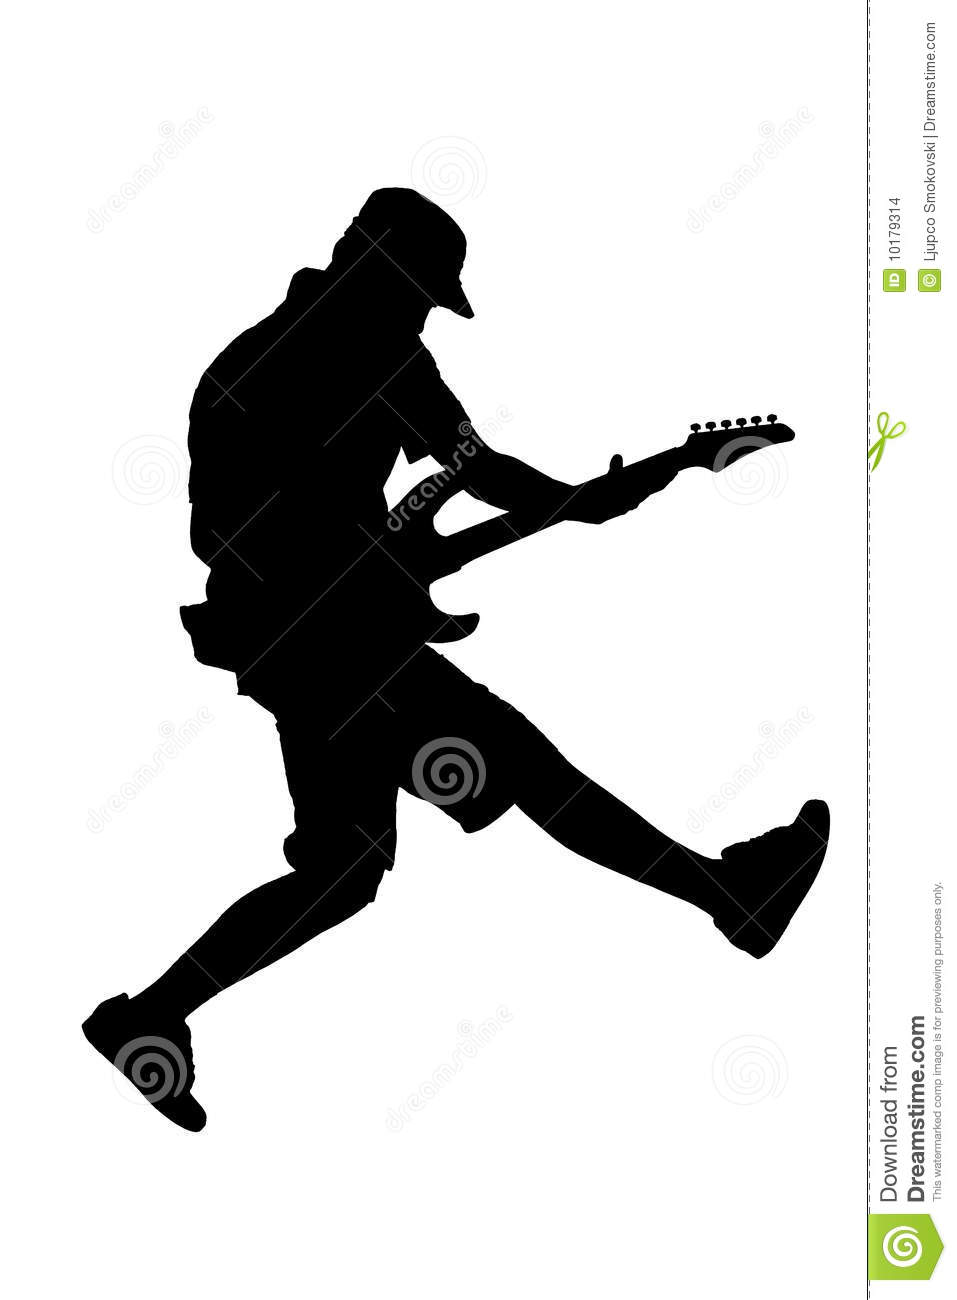 Silhouette of a guitar player jumping